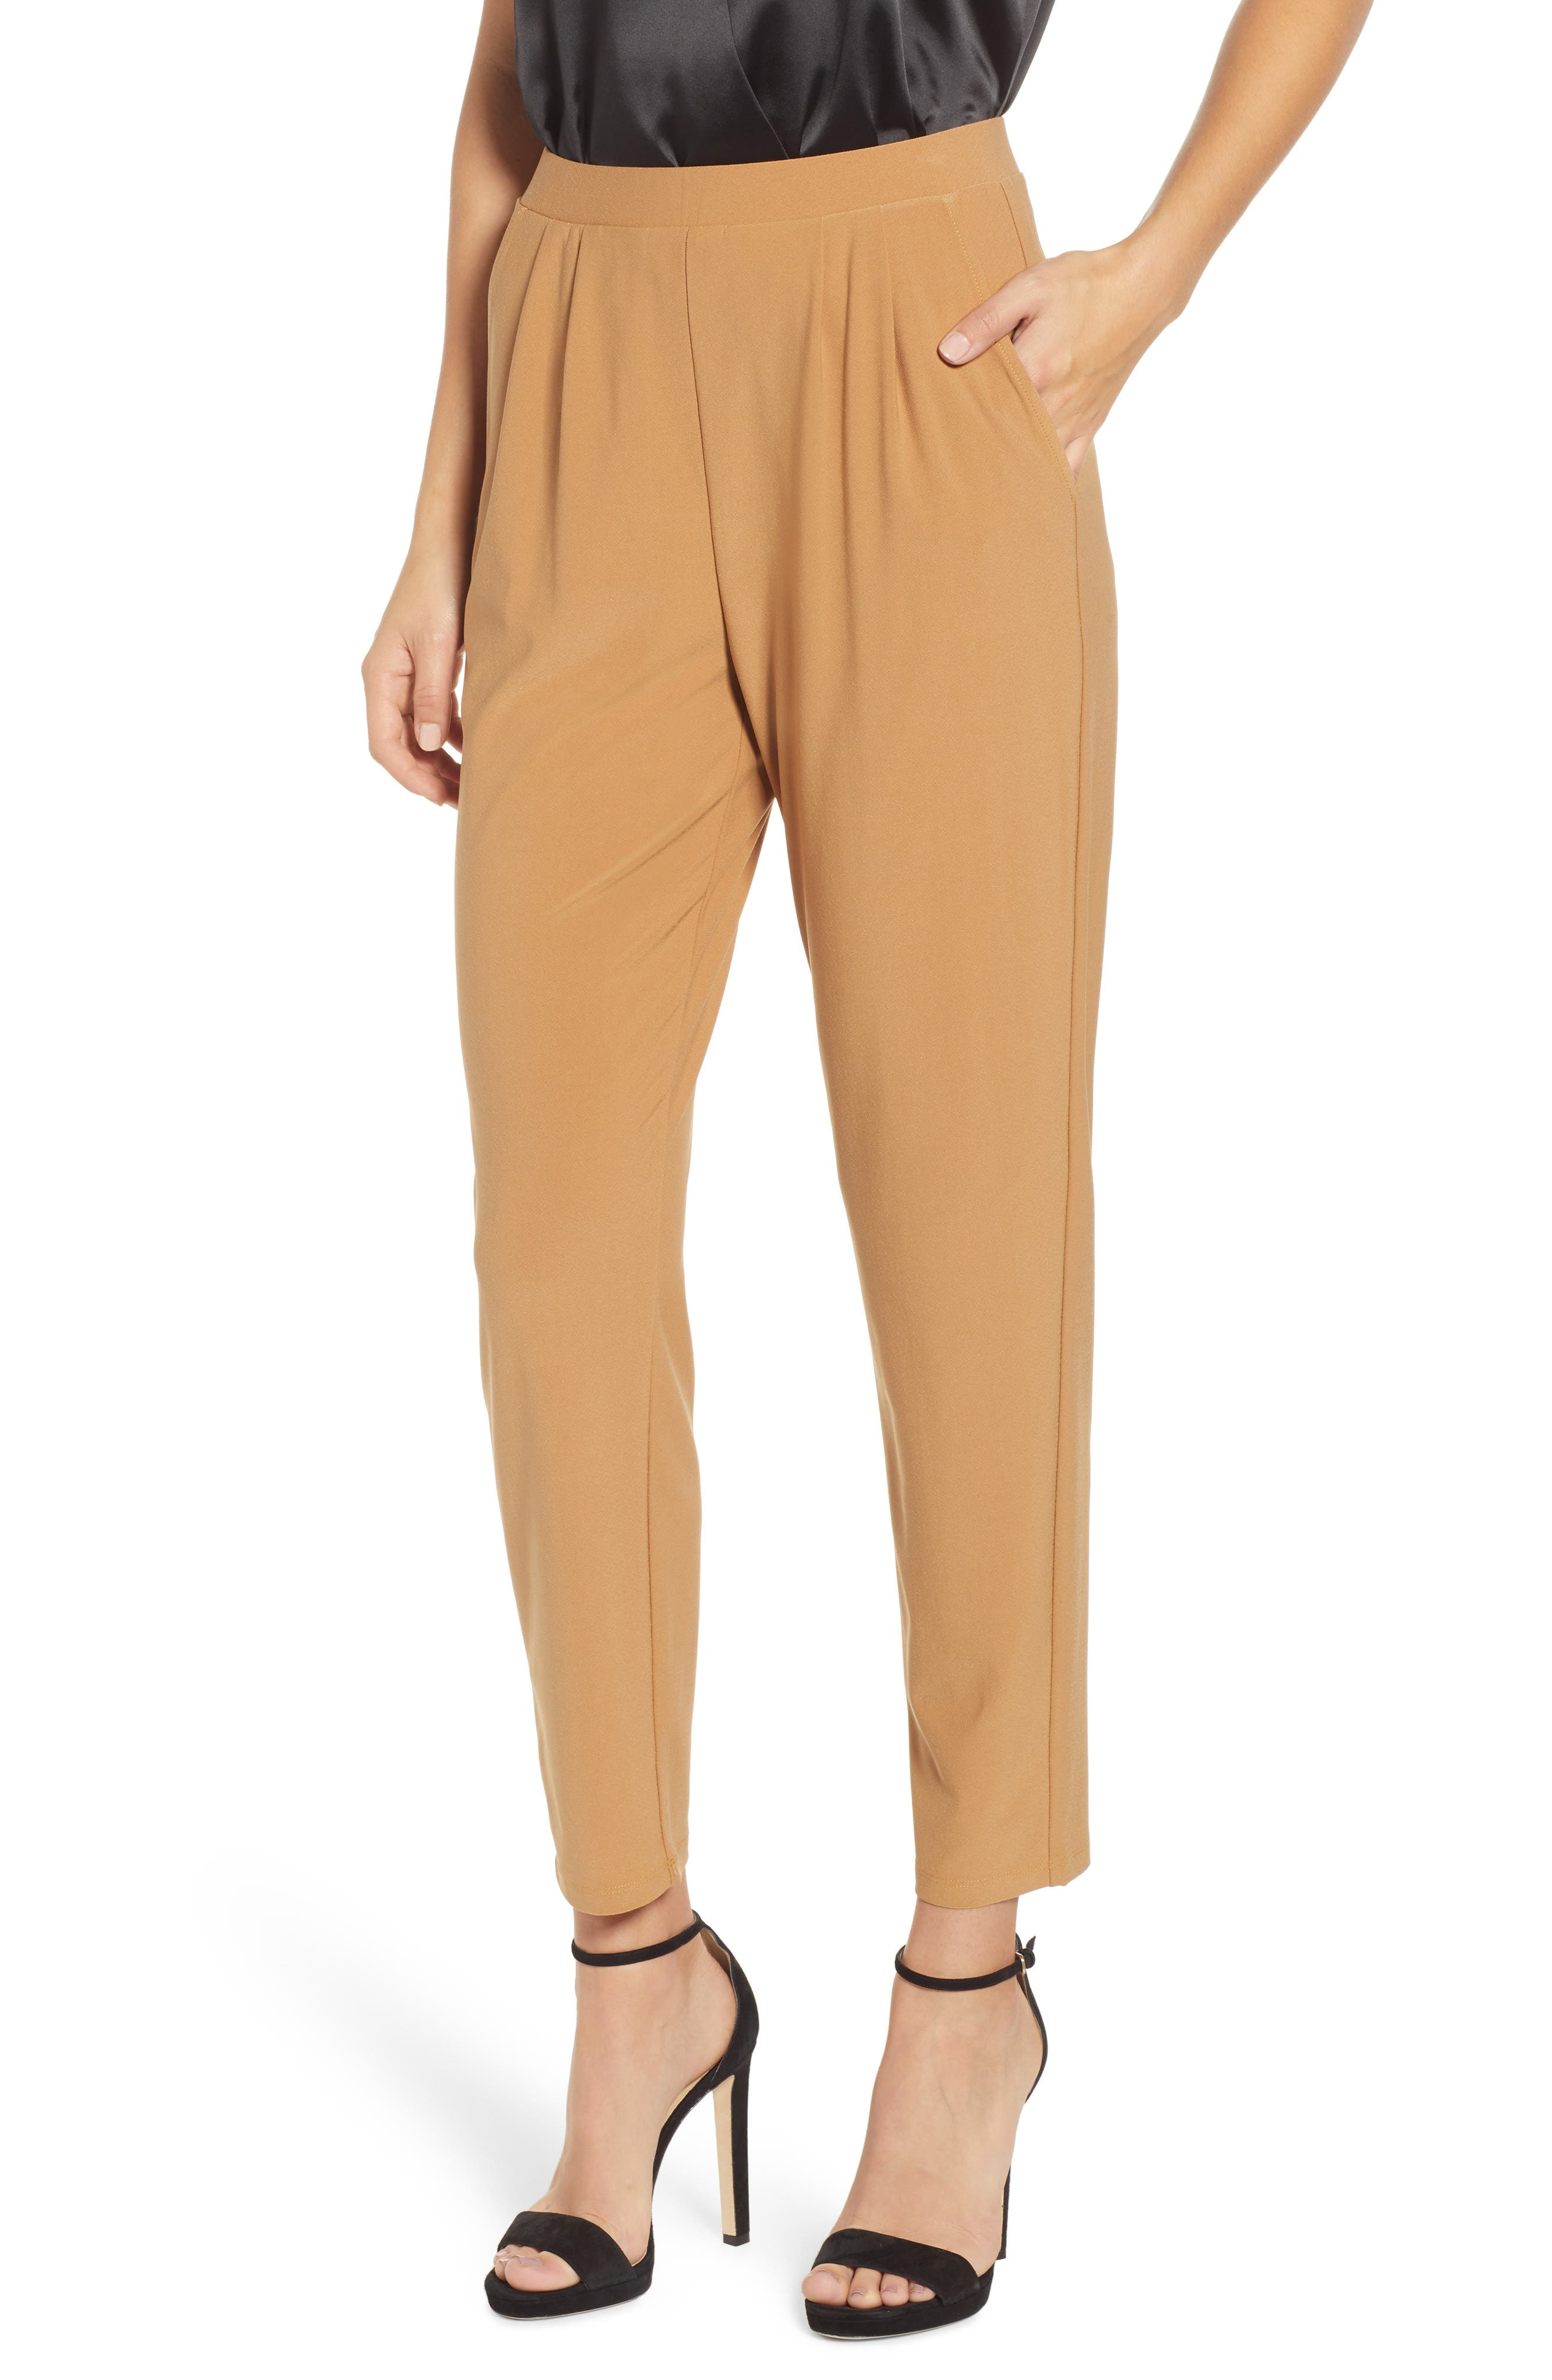 LEITH, Pleat Front Trousers, Main thumbnail 1, color, TAN DALE